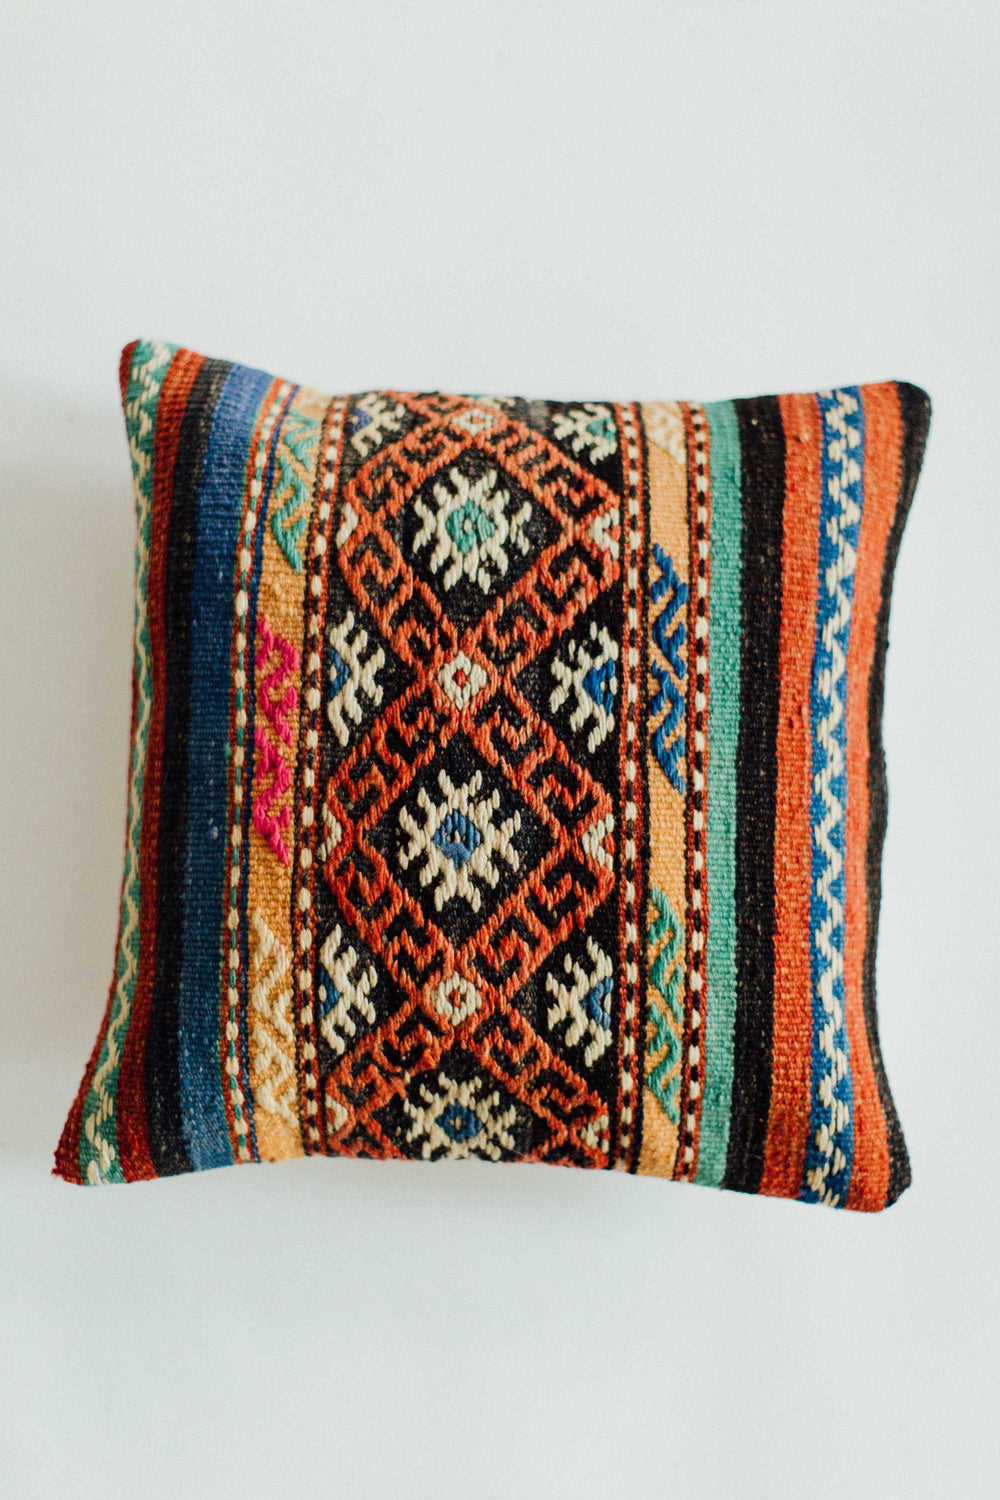 Vintage Turkish Pillow no. 007